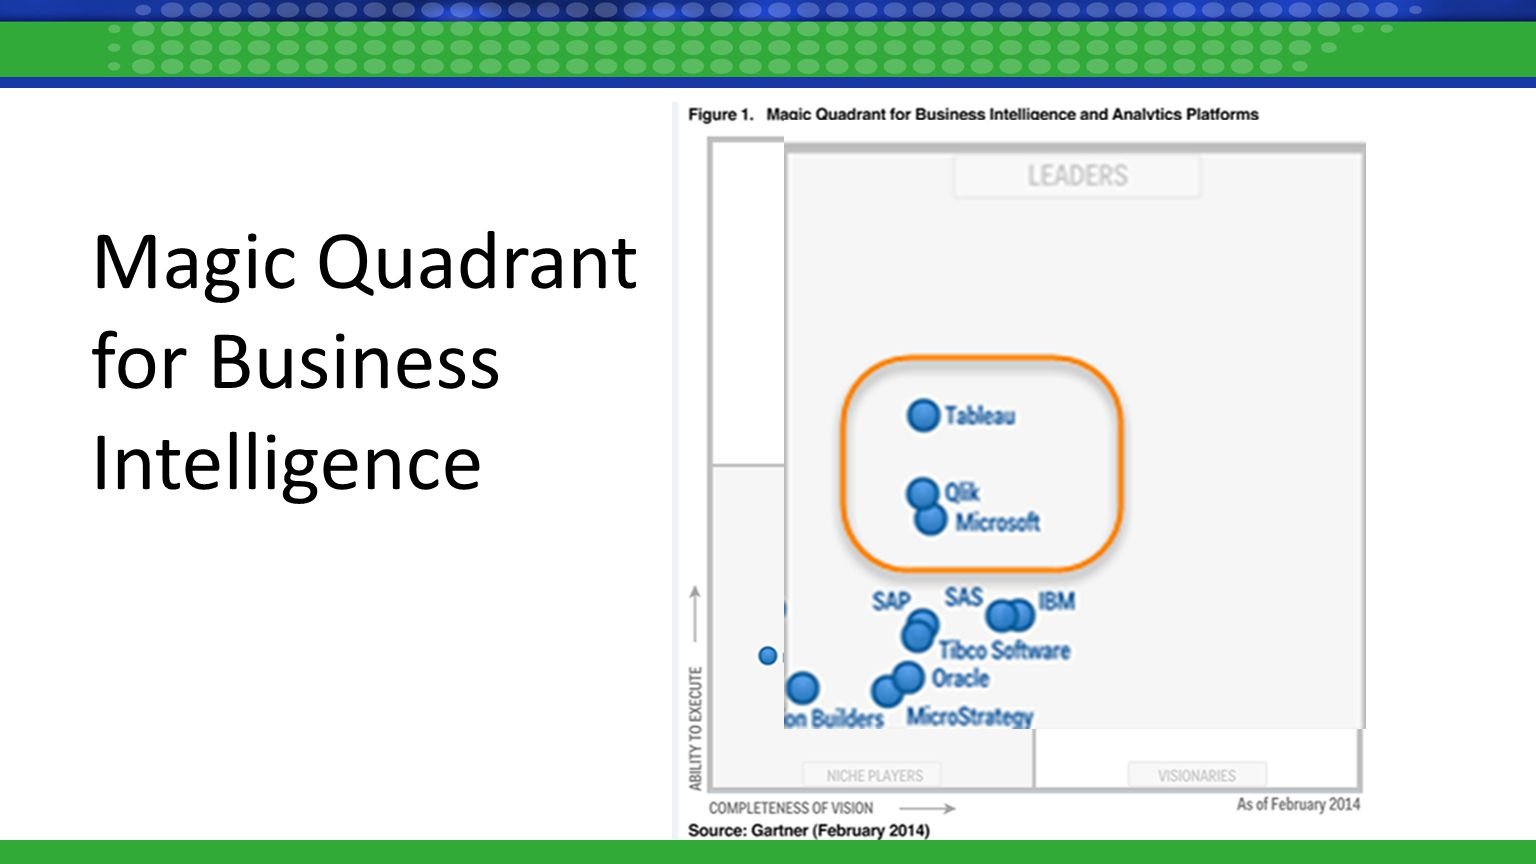 Magic Quadrant for Business Intelligence